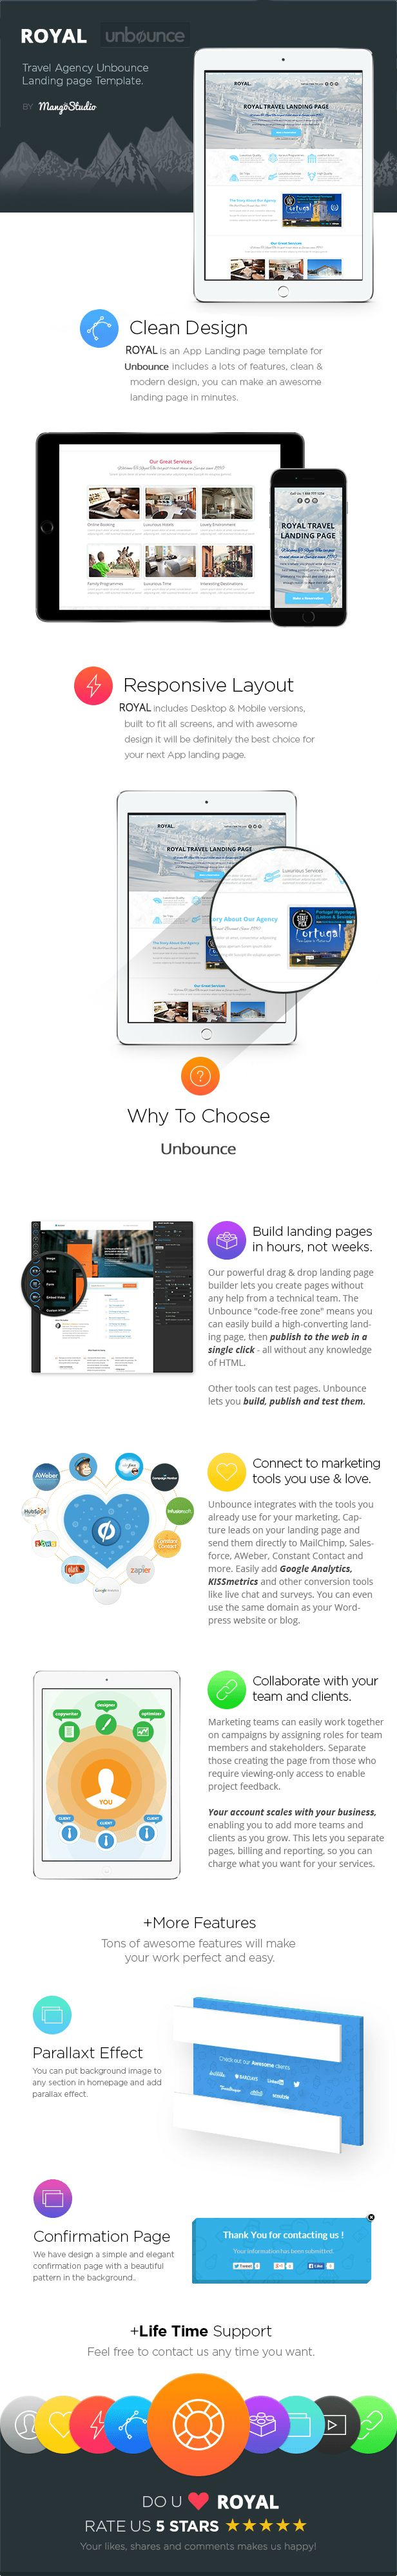 ROYAL - Travel Agency Unbounce Template - 4